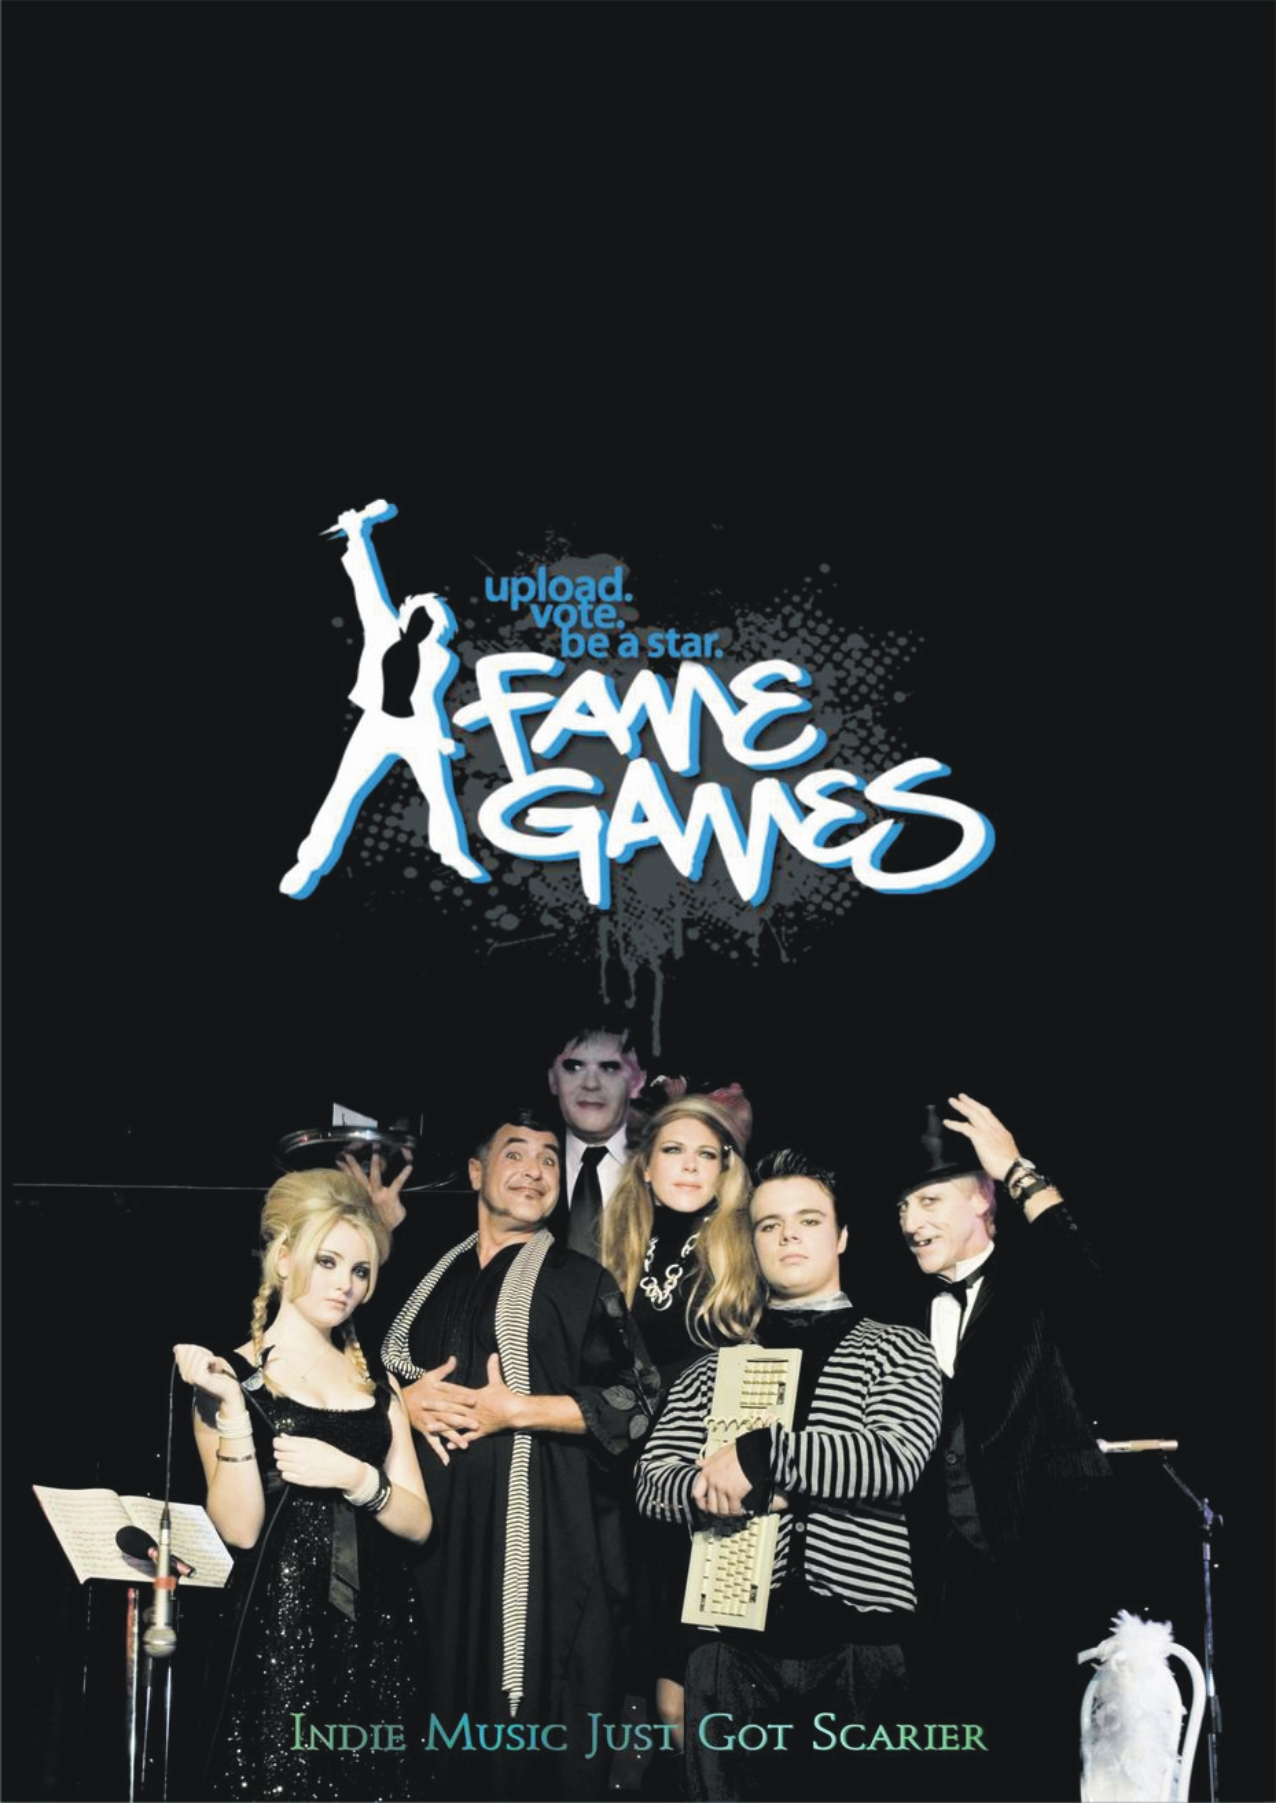 About the Fame Games Artists